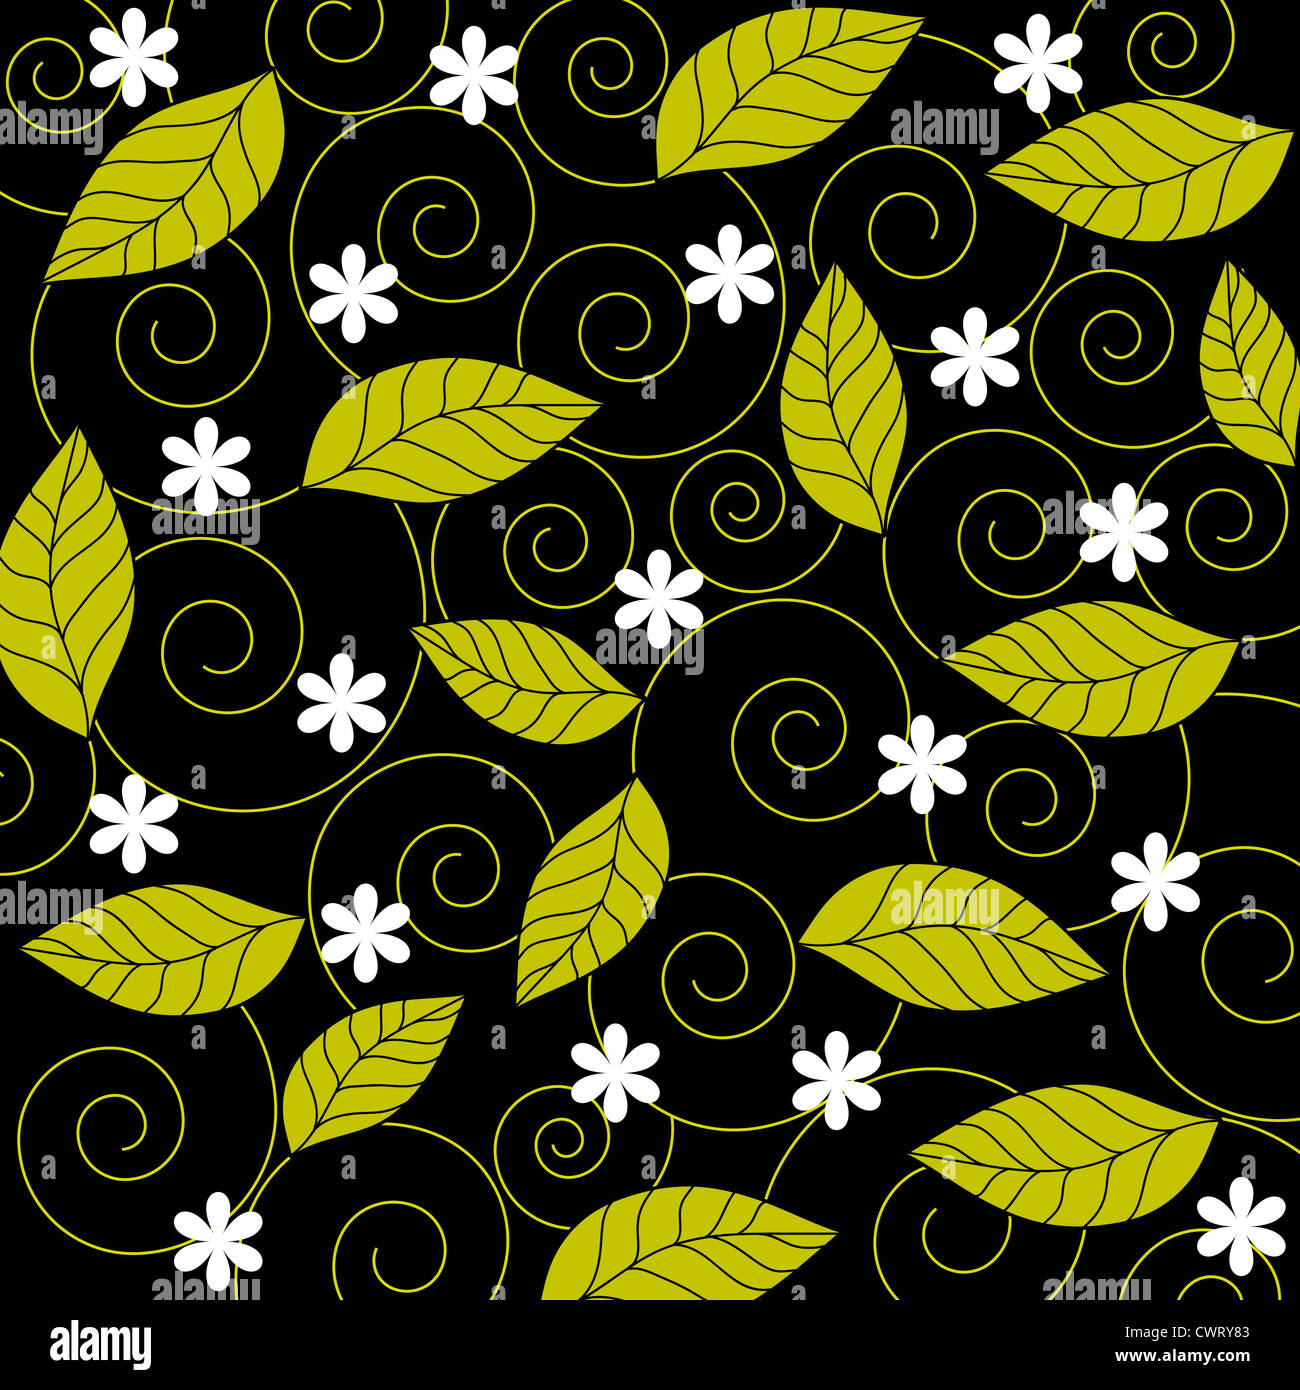 Flowers, leaves and spiral pattern on black Stock Photo